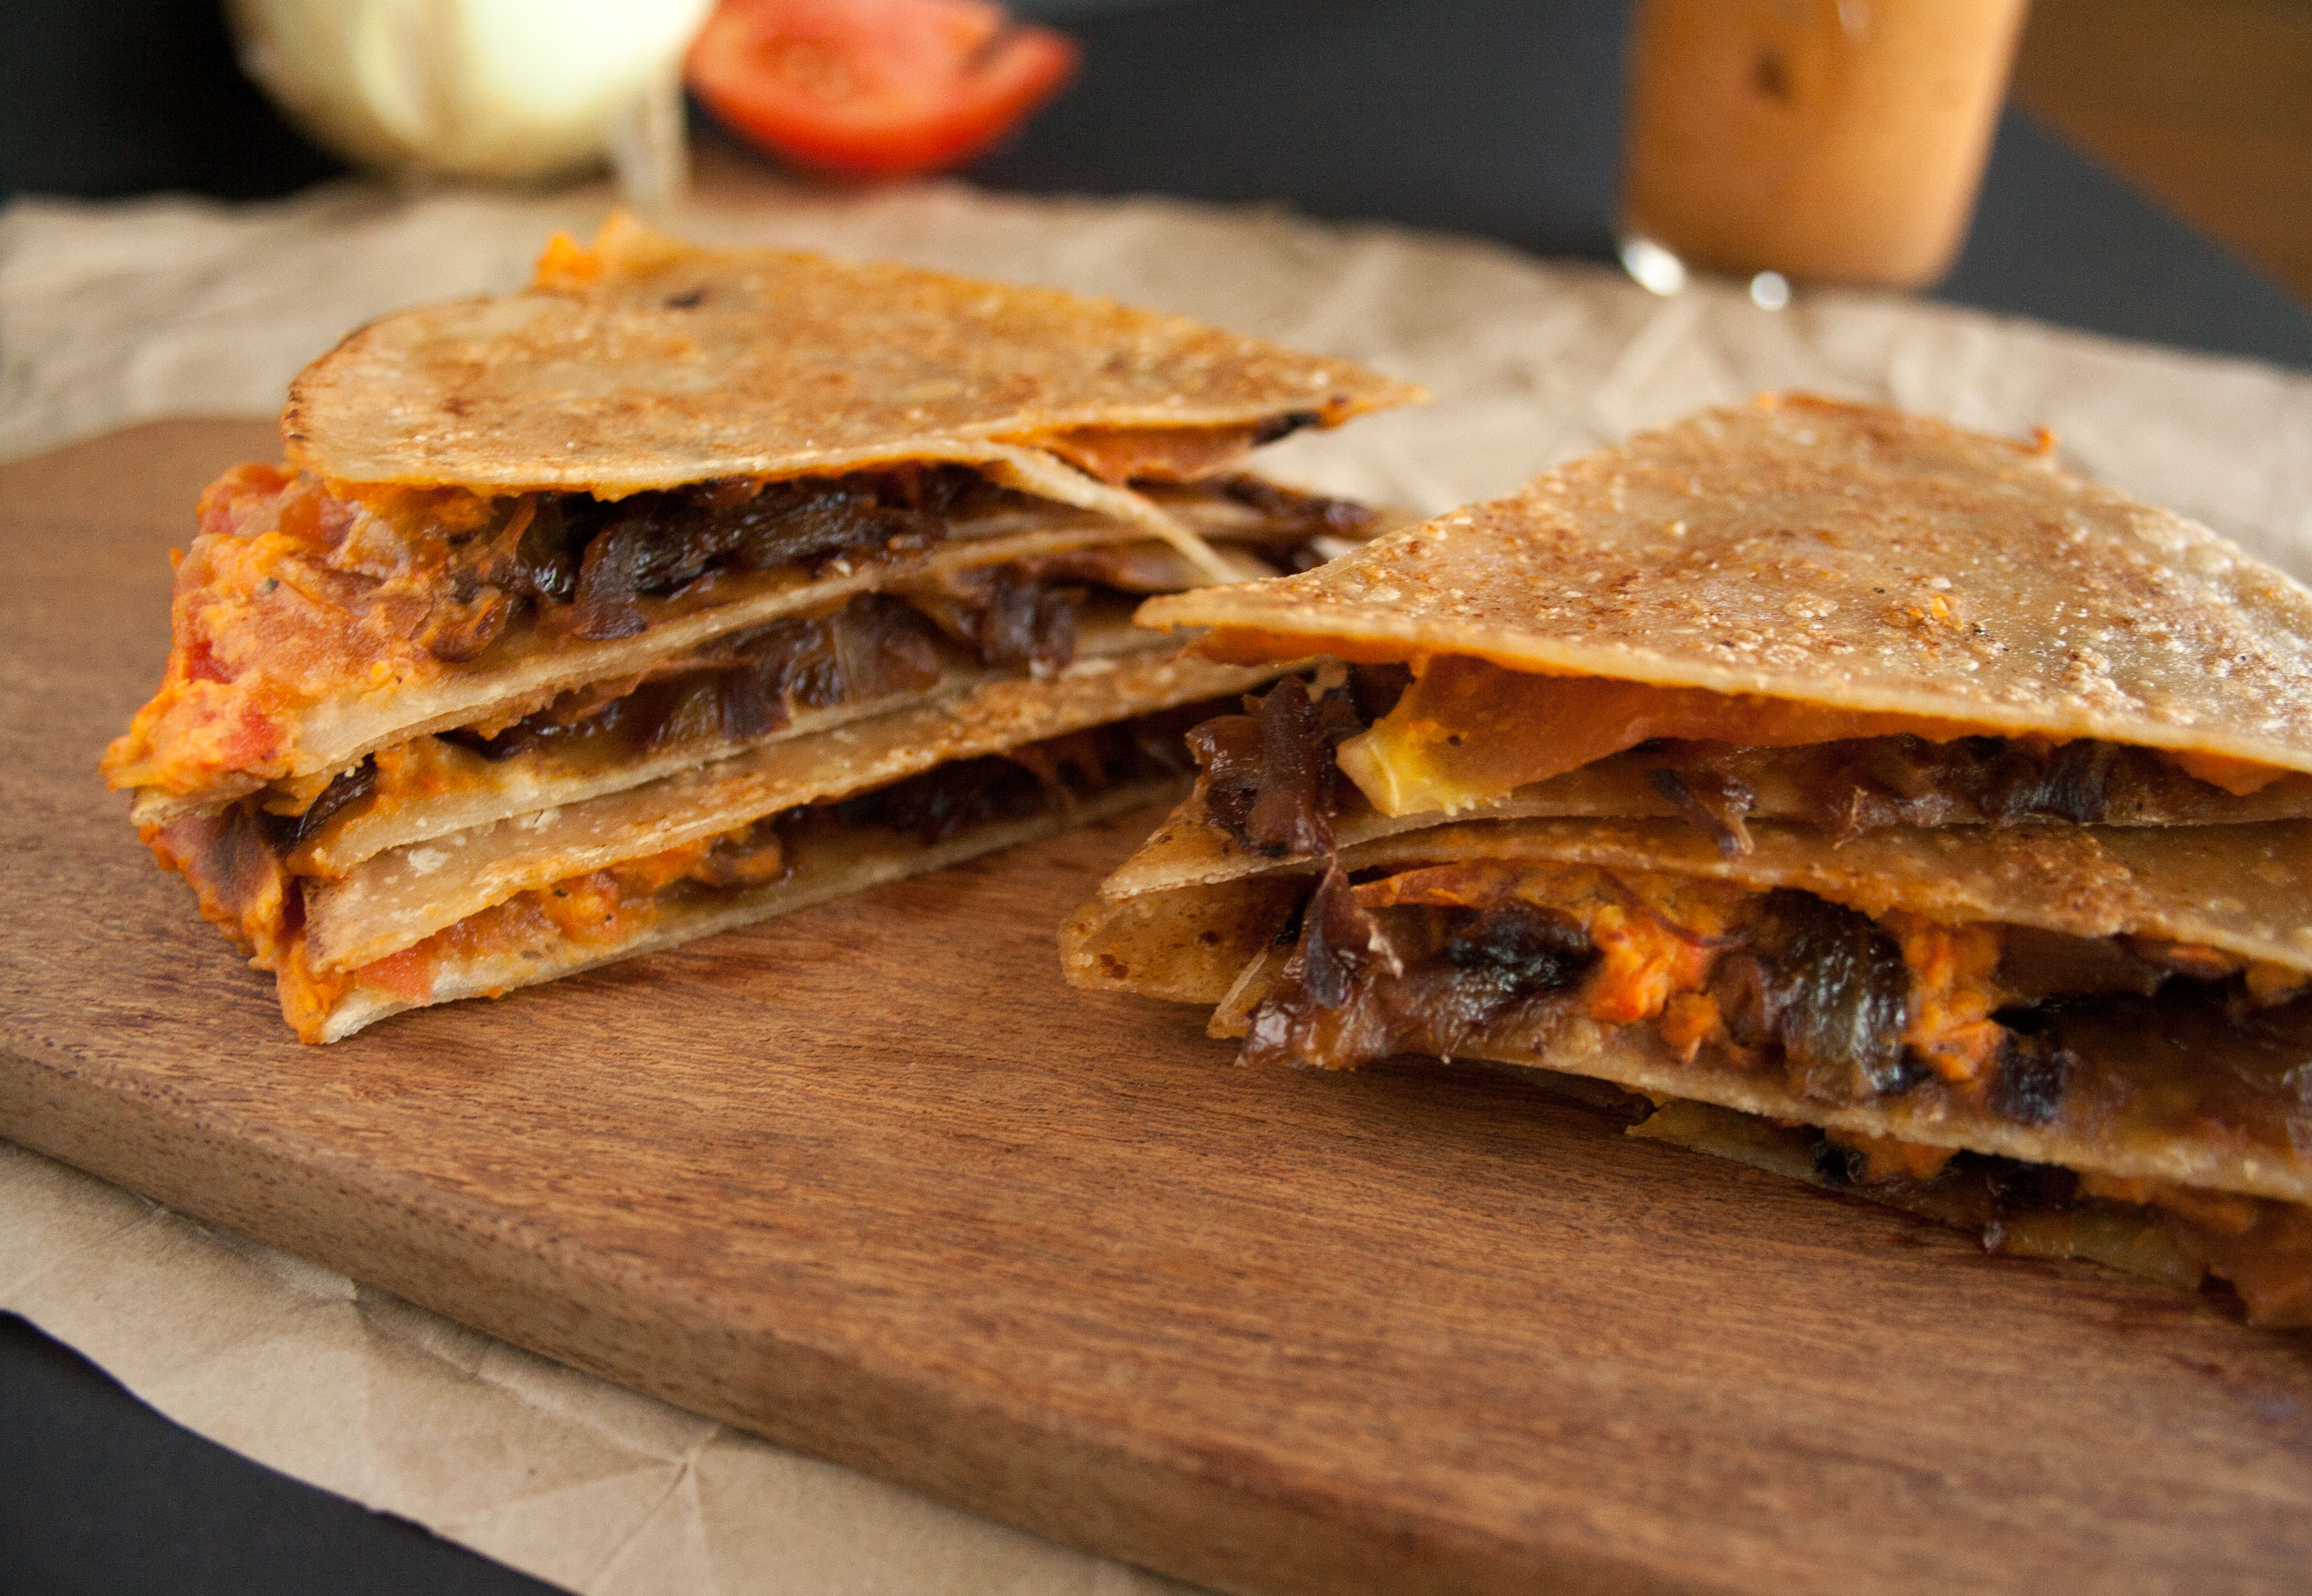 Caramelized Onion and Roasted Red Pepper Quesadilla close up